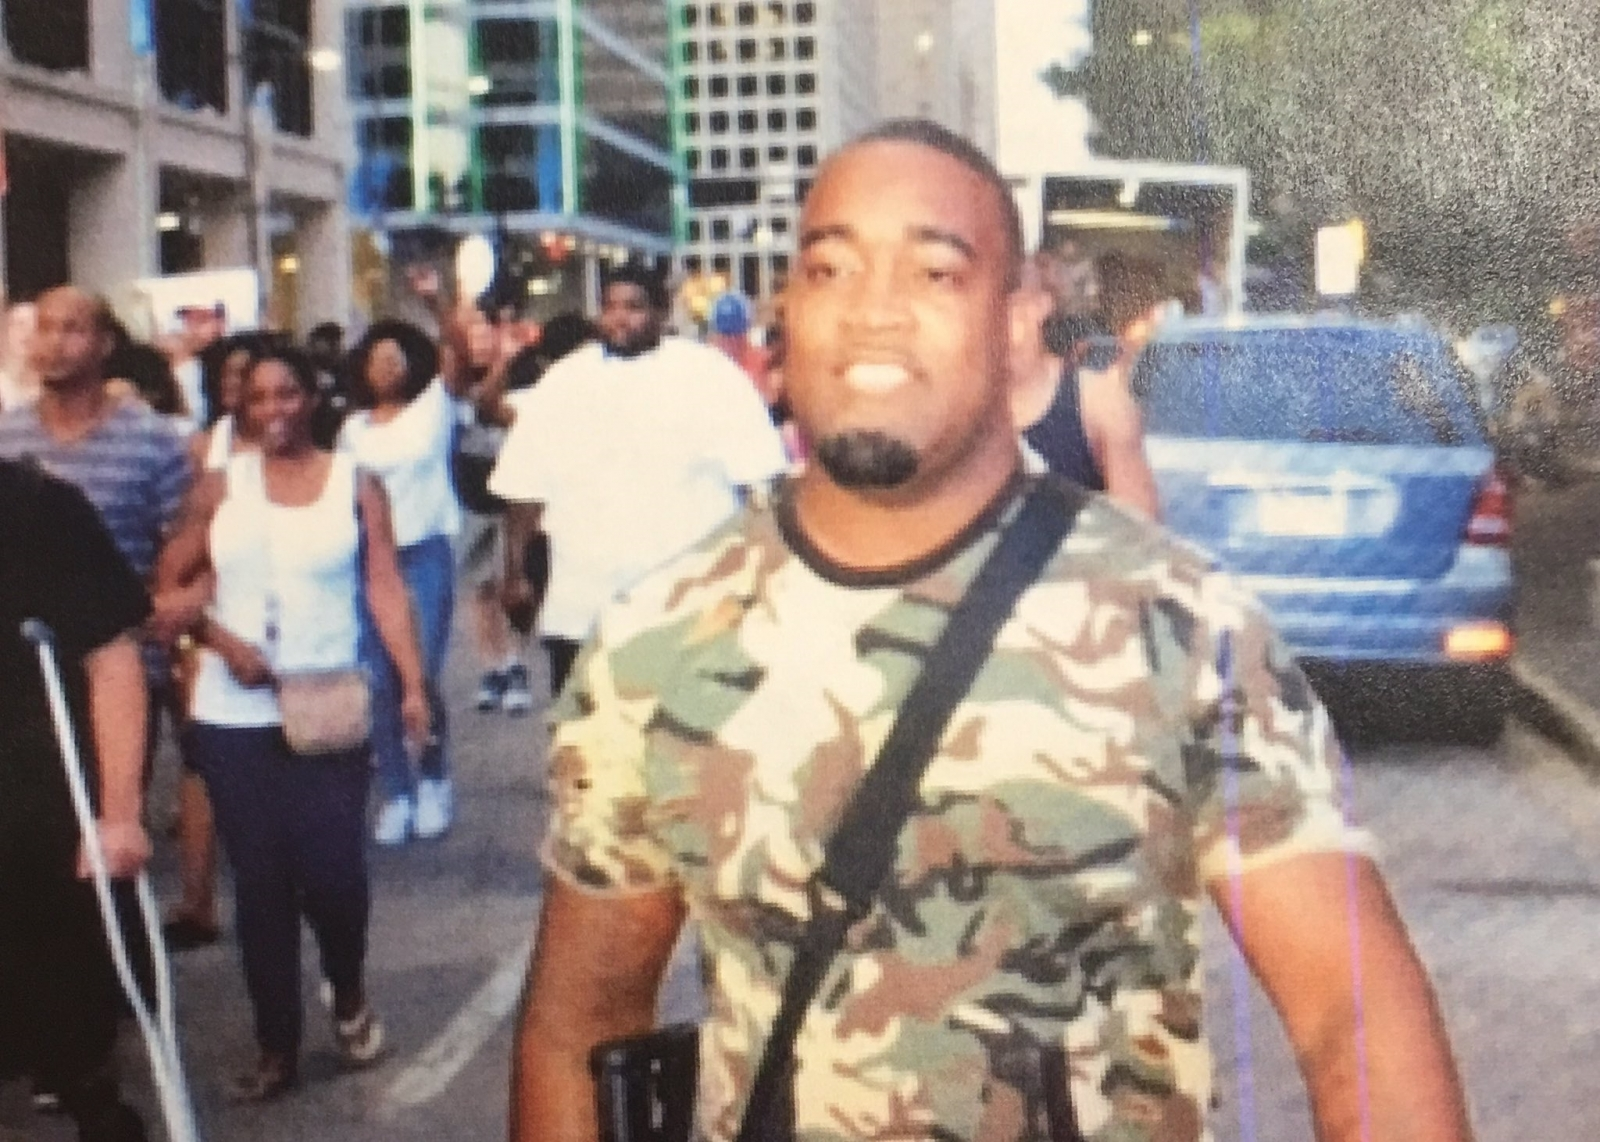 Dallas police slammed on social media for tweeting picture of innocent 'suspect'